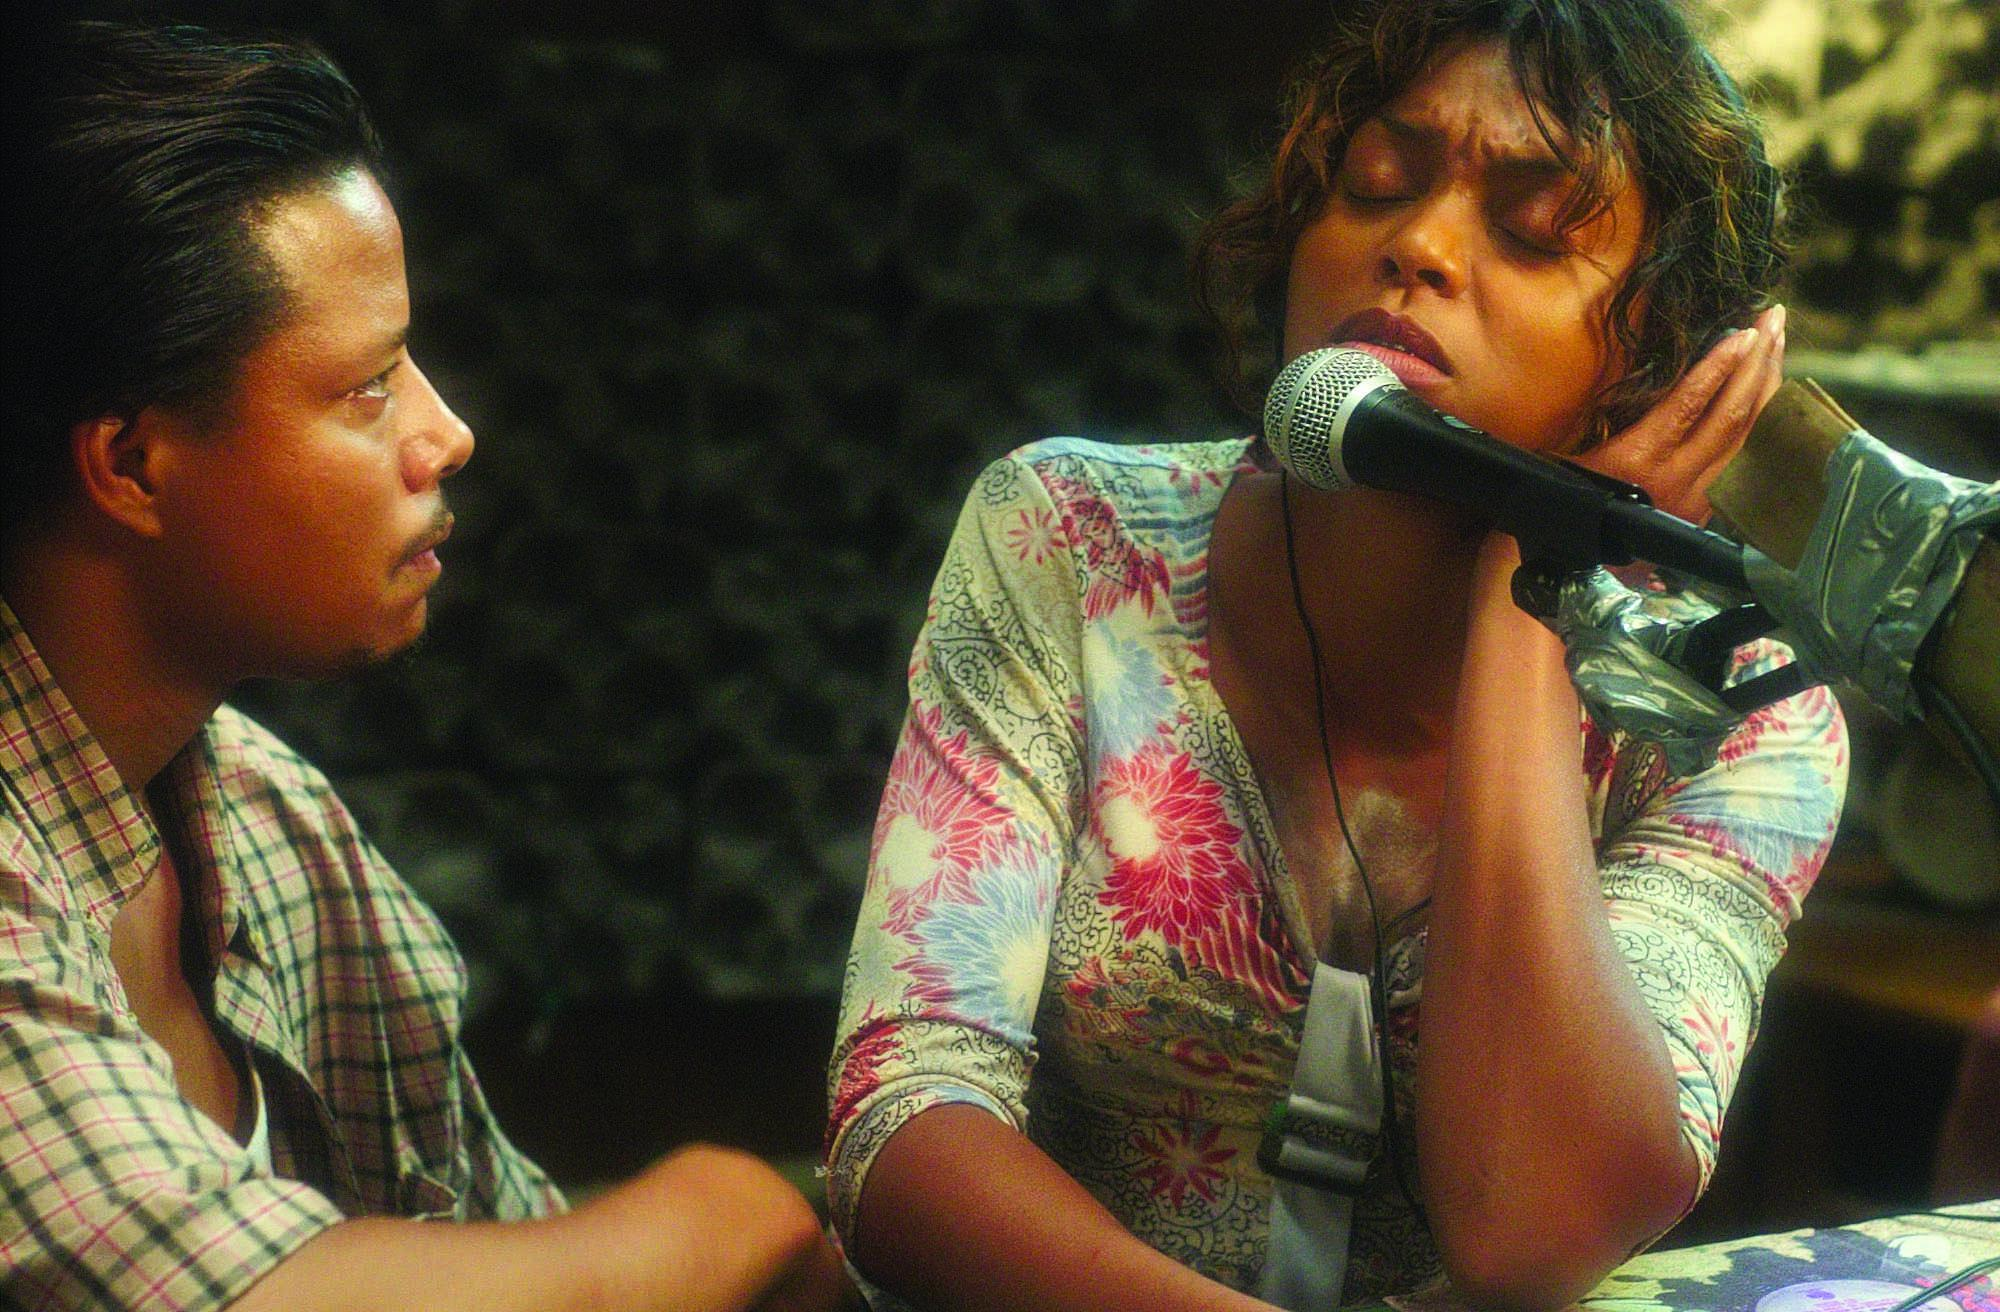 No Merchandising. Editorial Use Only. No Book Cover UsageMandatory Credit: Photo by Snap Stills/REX/Shutterstock (1991366v) Hustle and Flow - Terrence Howard and Taraji P. Henson. Hustle and Flow - 2005